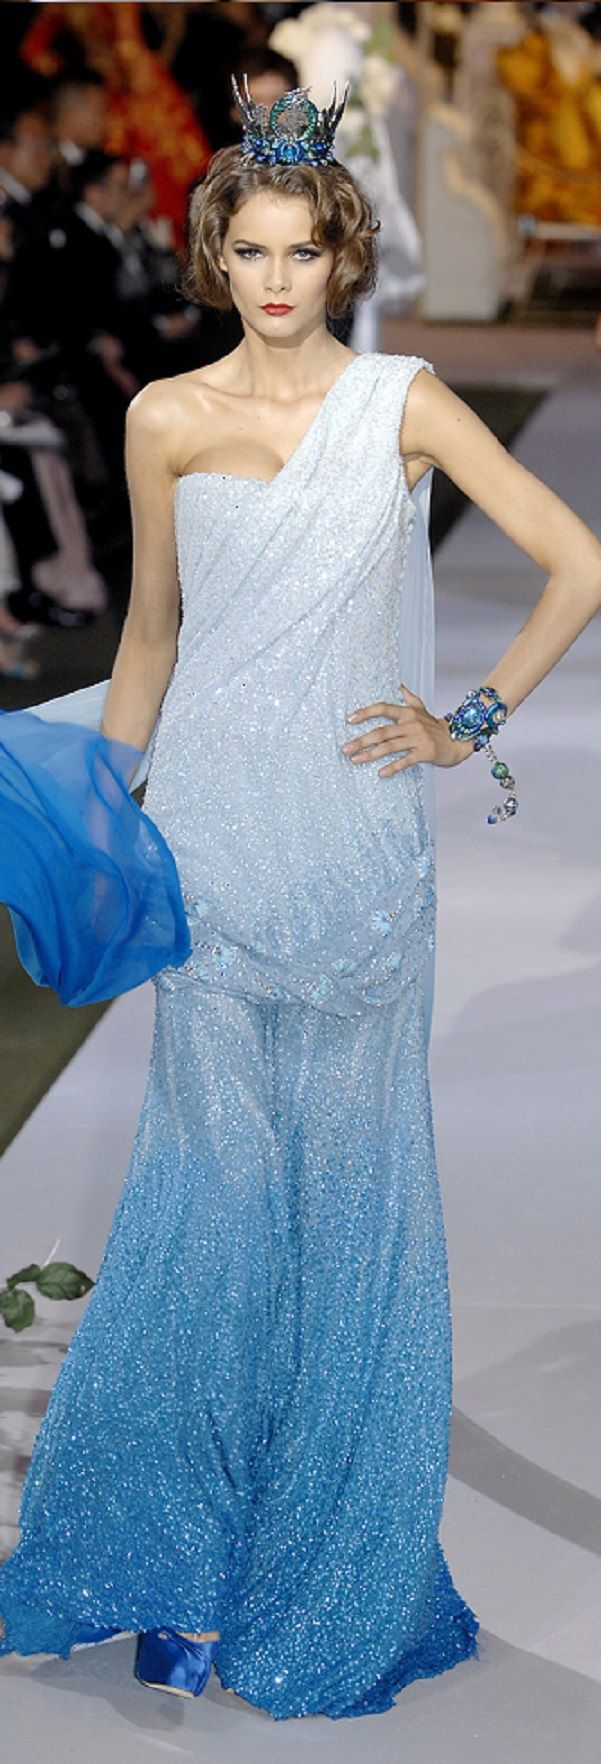 Christian Dior - Haute Couture fall 2007 -